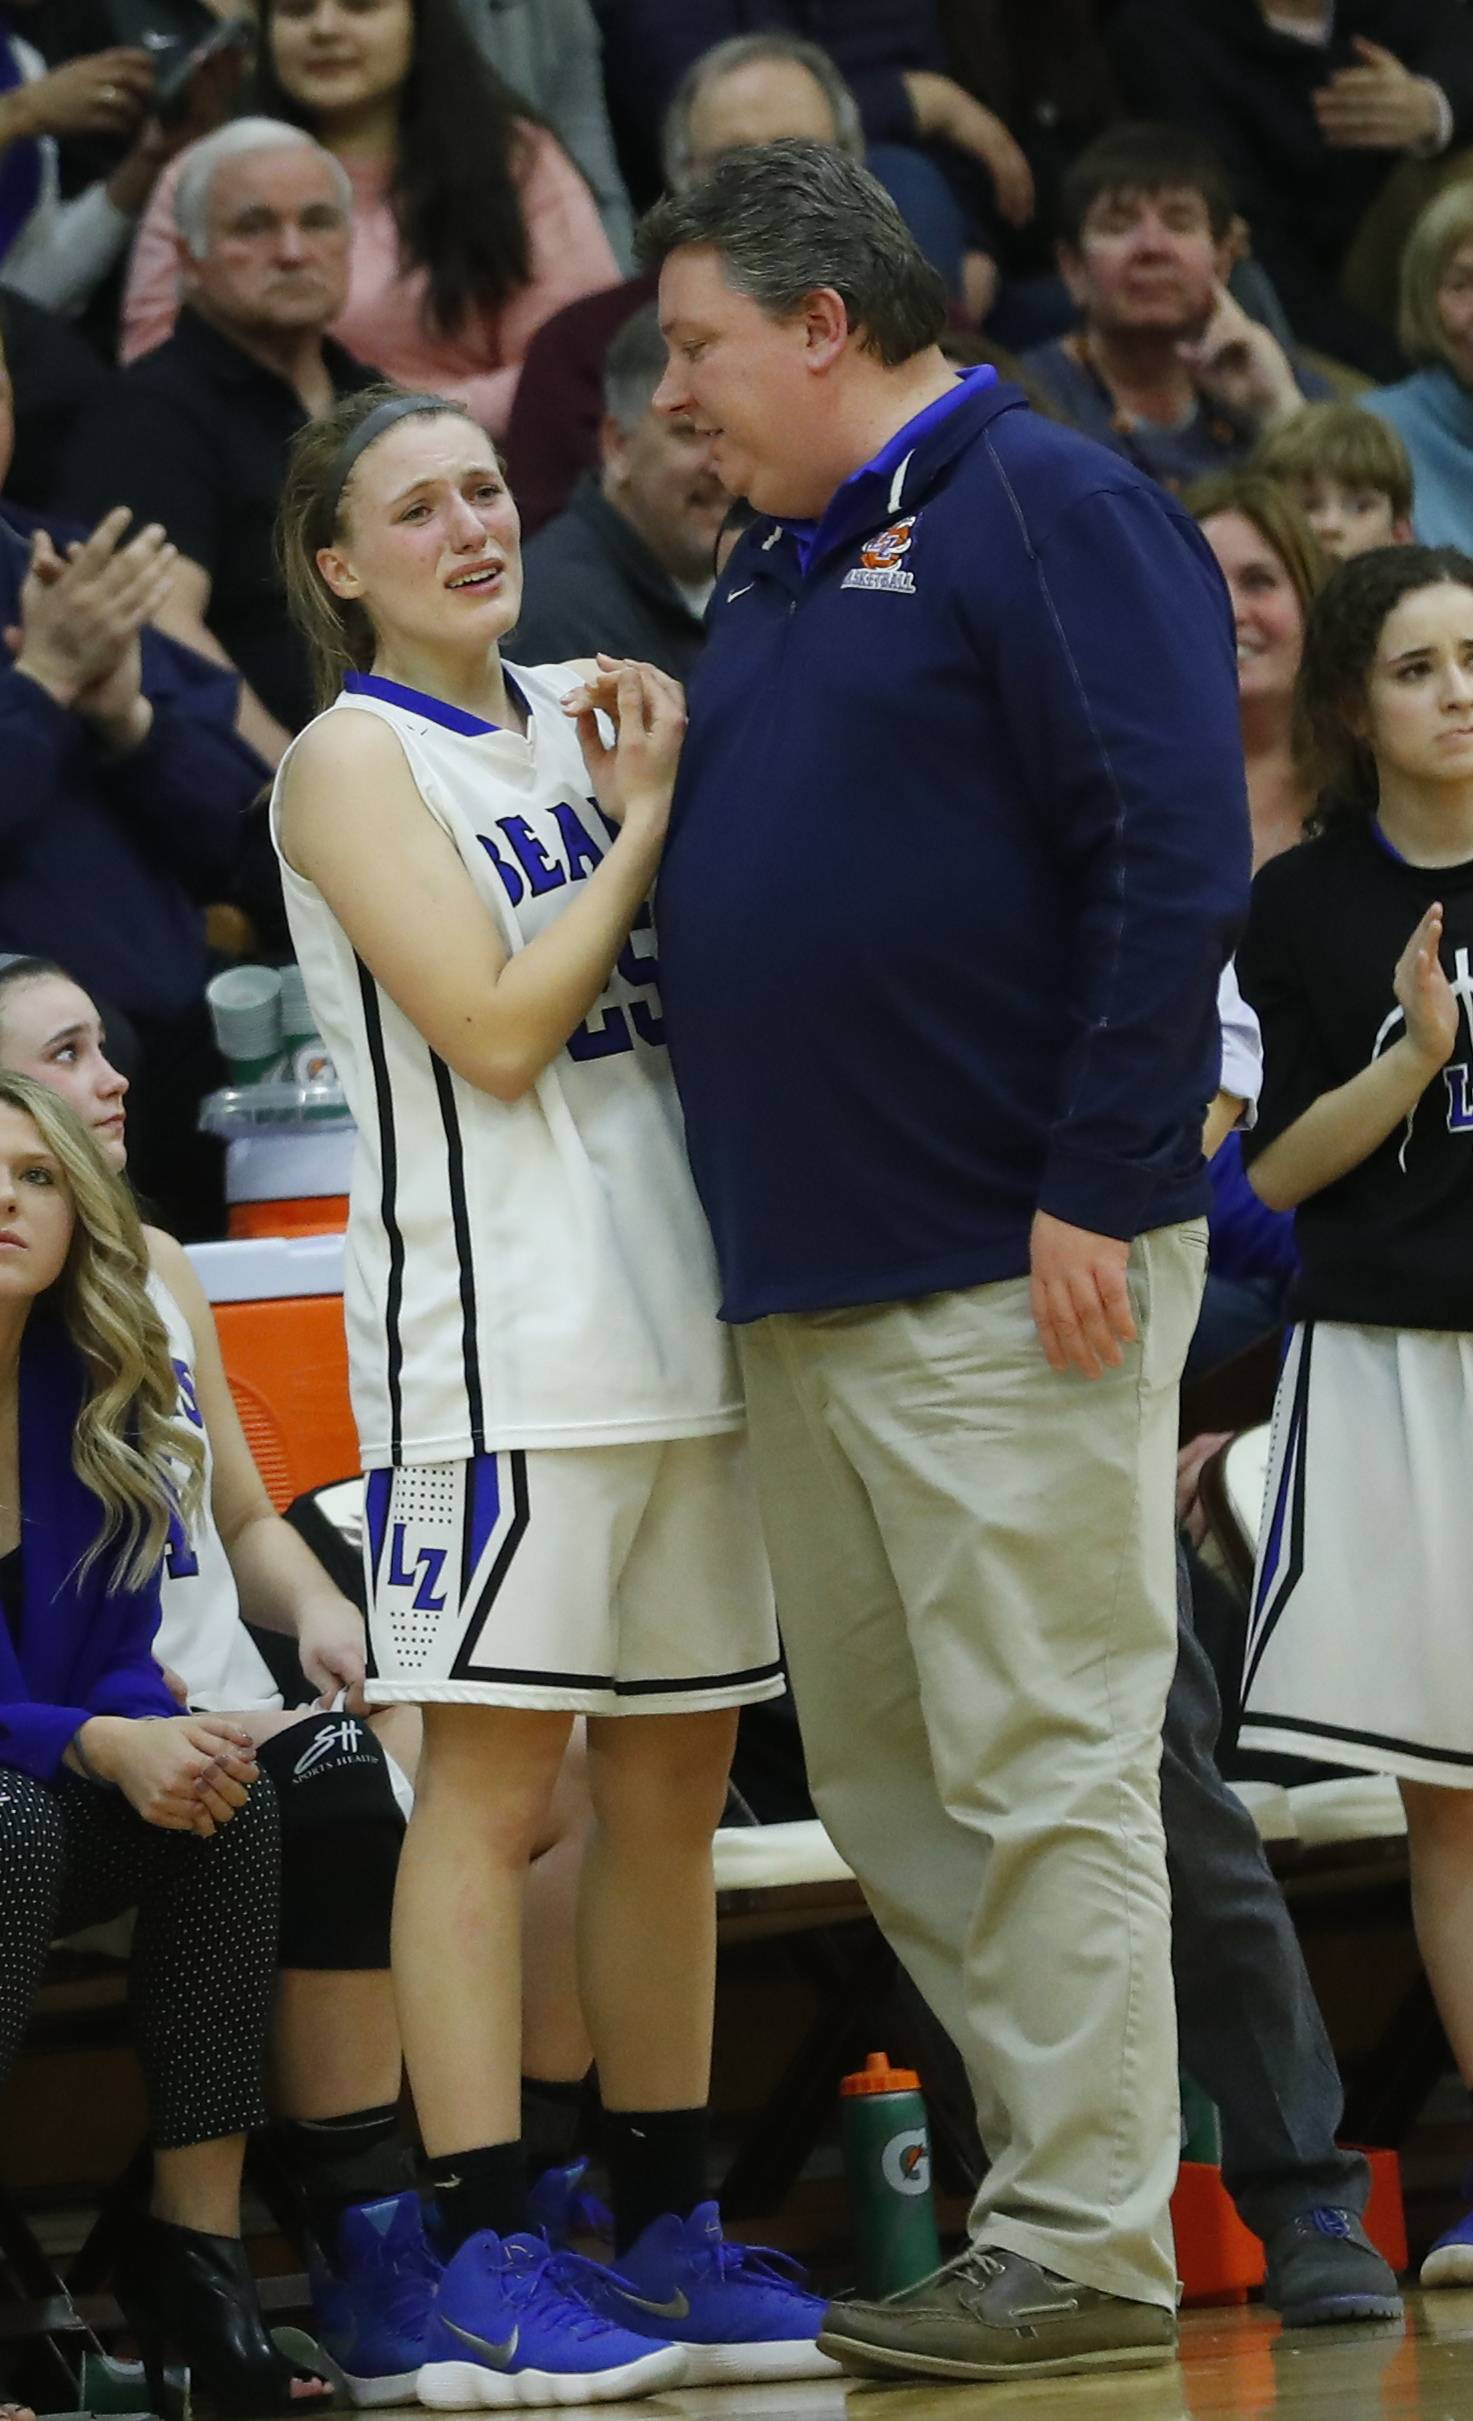 Lake Zurich's Maddy Piggott is consoled by coach Chris Bennett after fouling out of the Class 4A supersectional at Hersey High School in Arlington Heights on Monday.